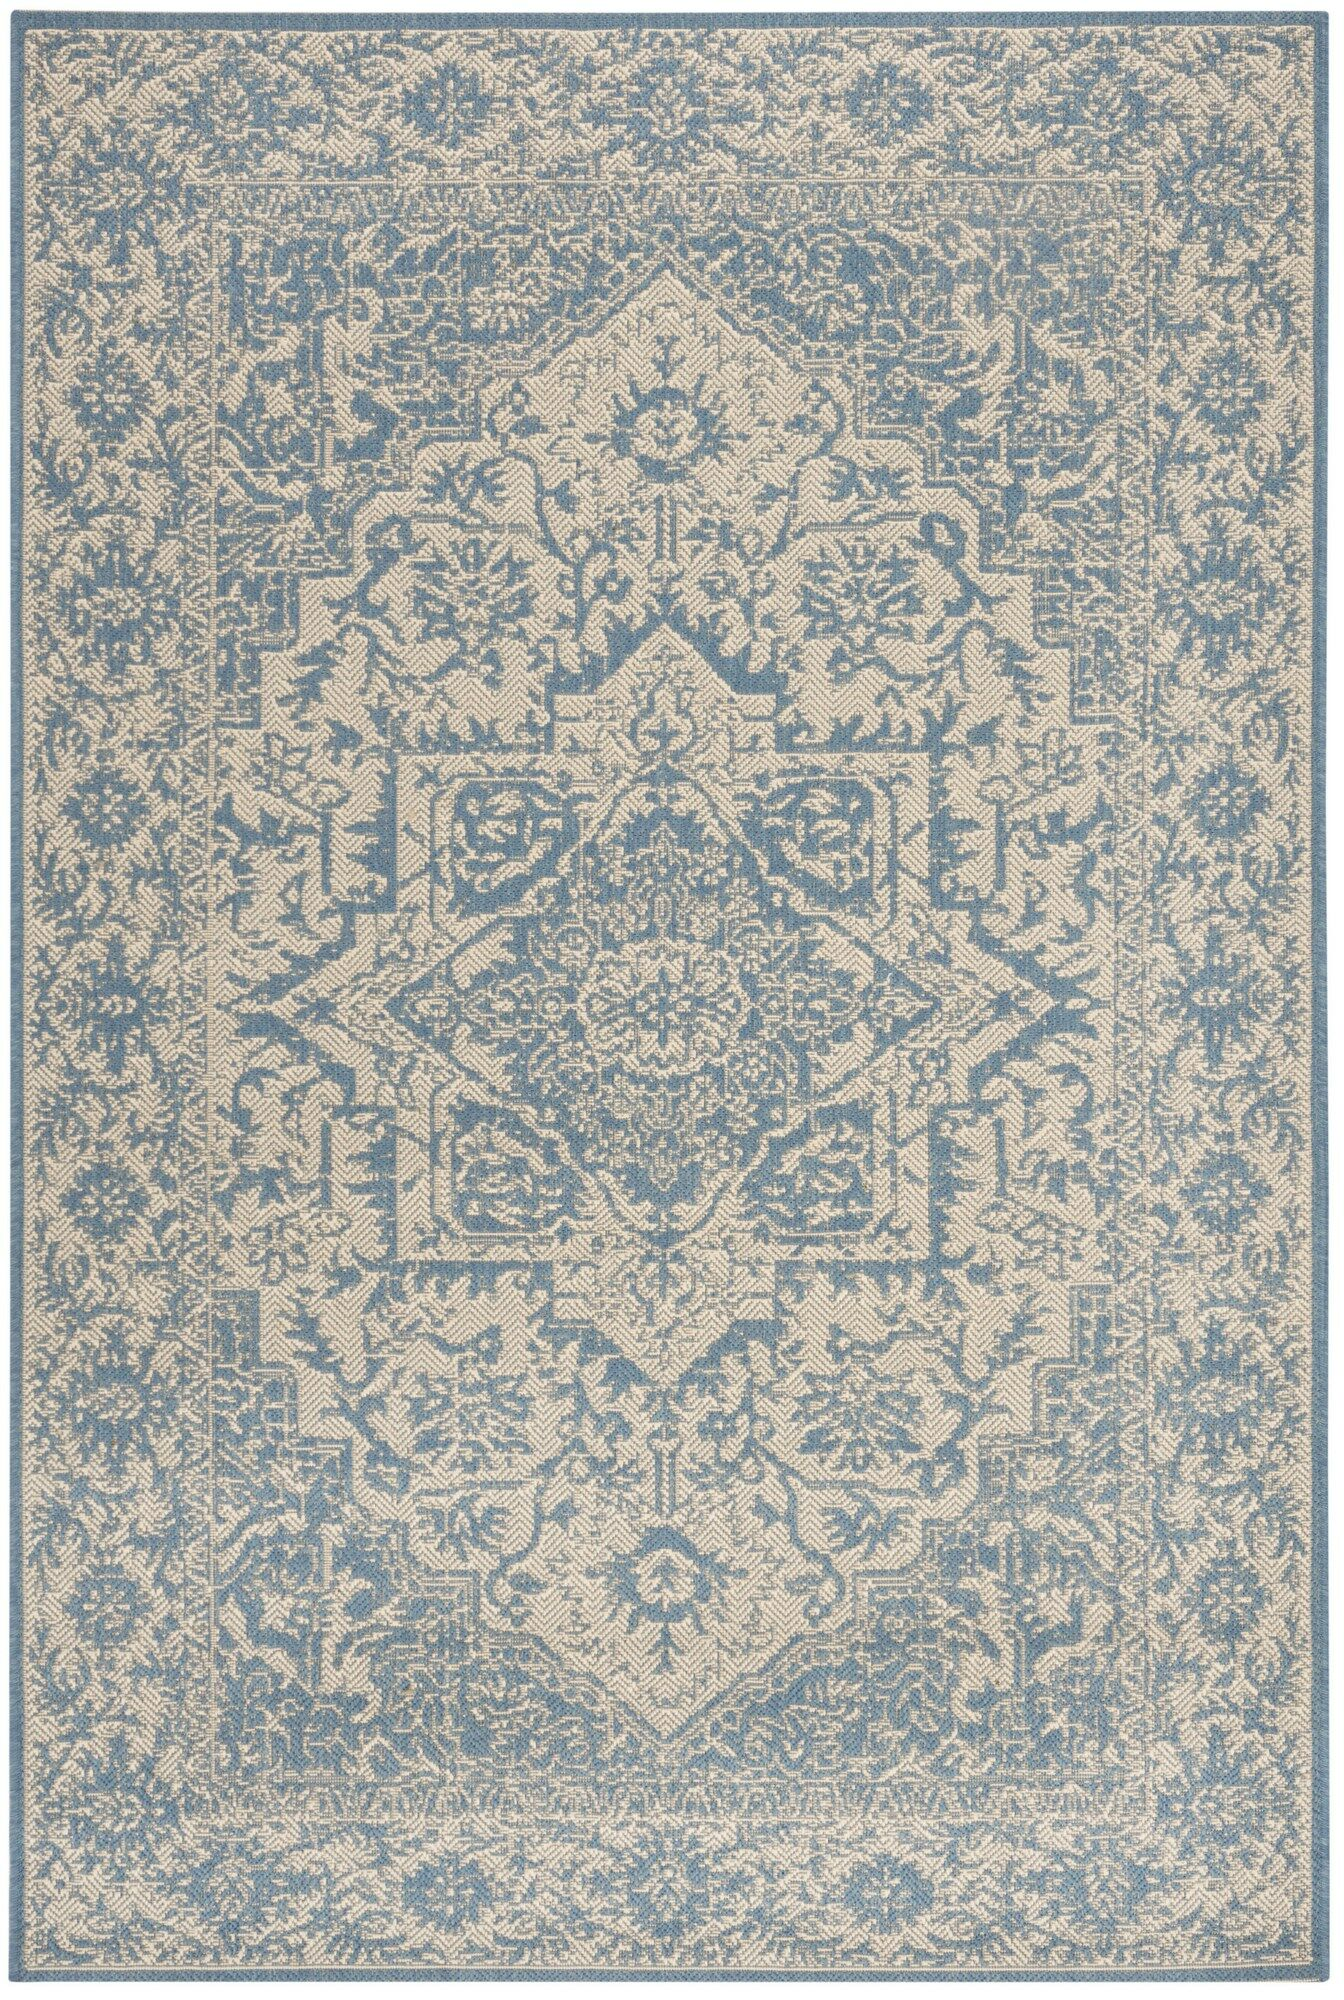 Dunnyvadden Cream/Blue Area Rug Rug Size: Rectangle 5'1